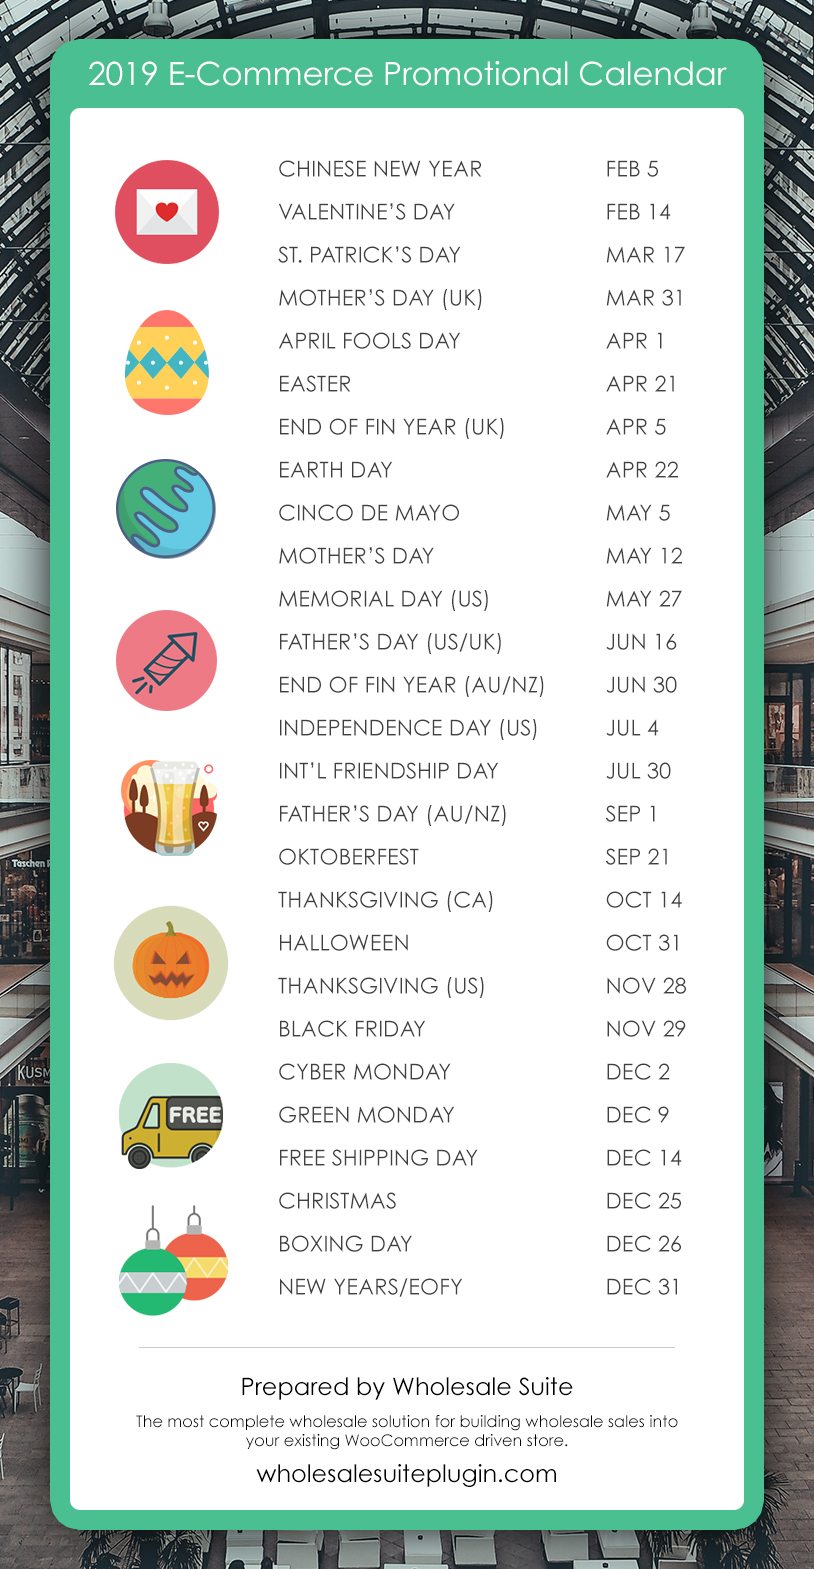 2019 E-Commerce Promotional Calendar: Holidays and Key Sales Dates (Updated)